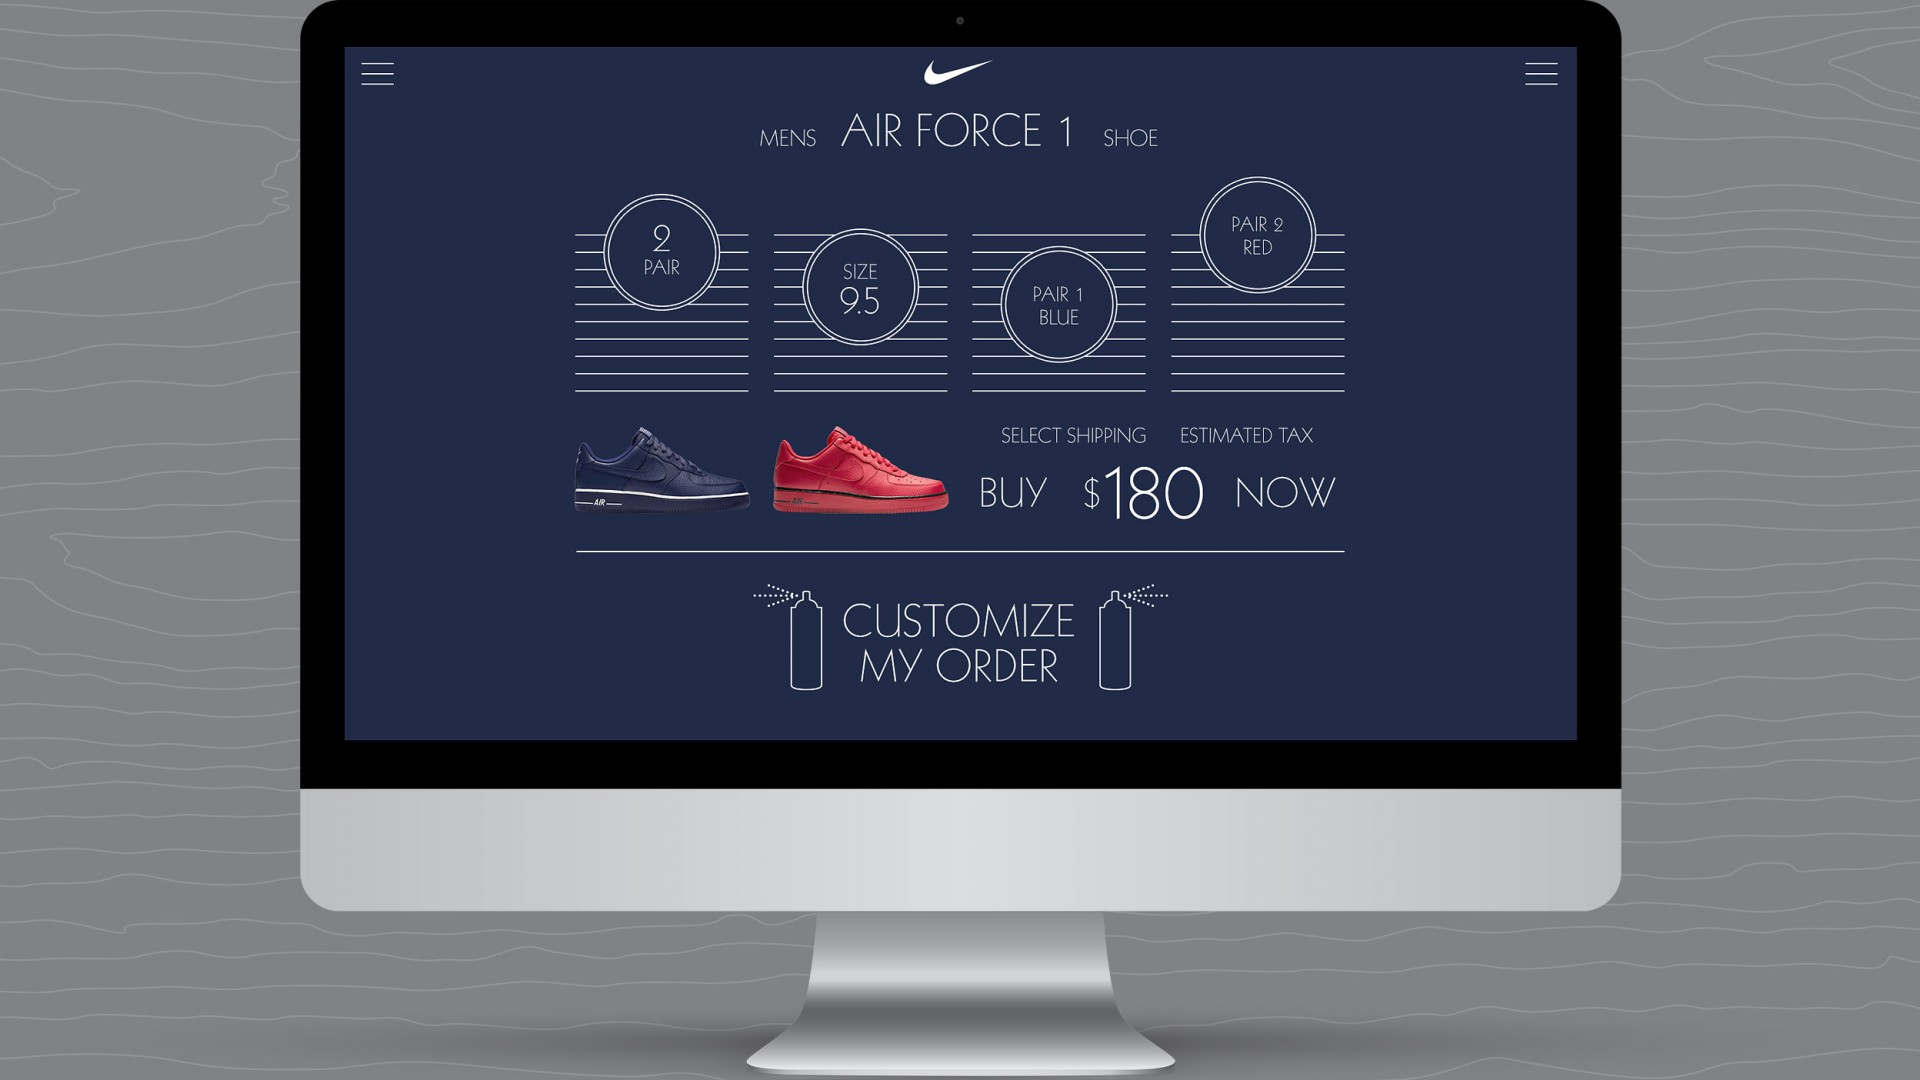 Match Your Mood, Nike UX/UI, desktop view blue shoe shopping selections view.